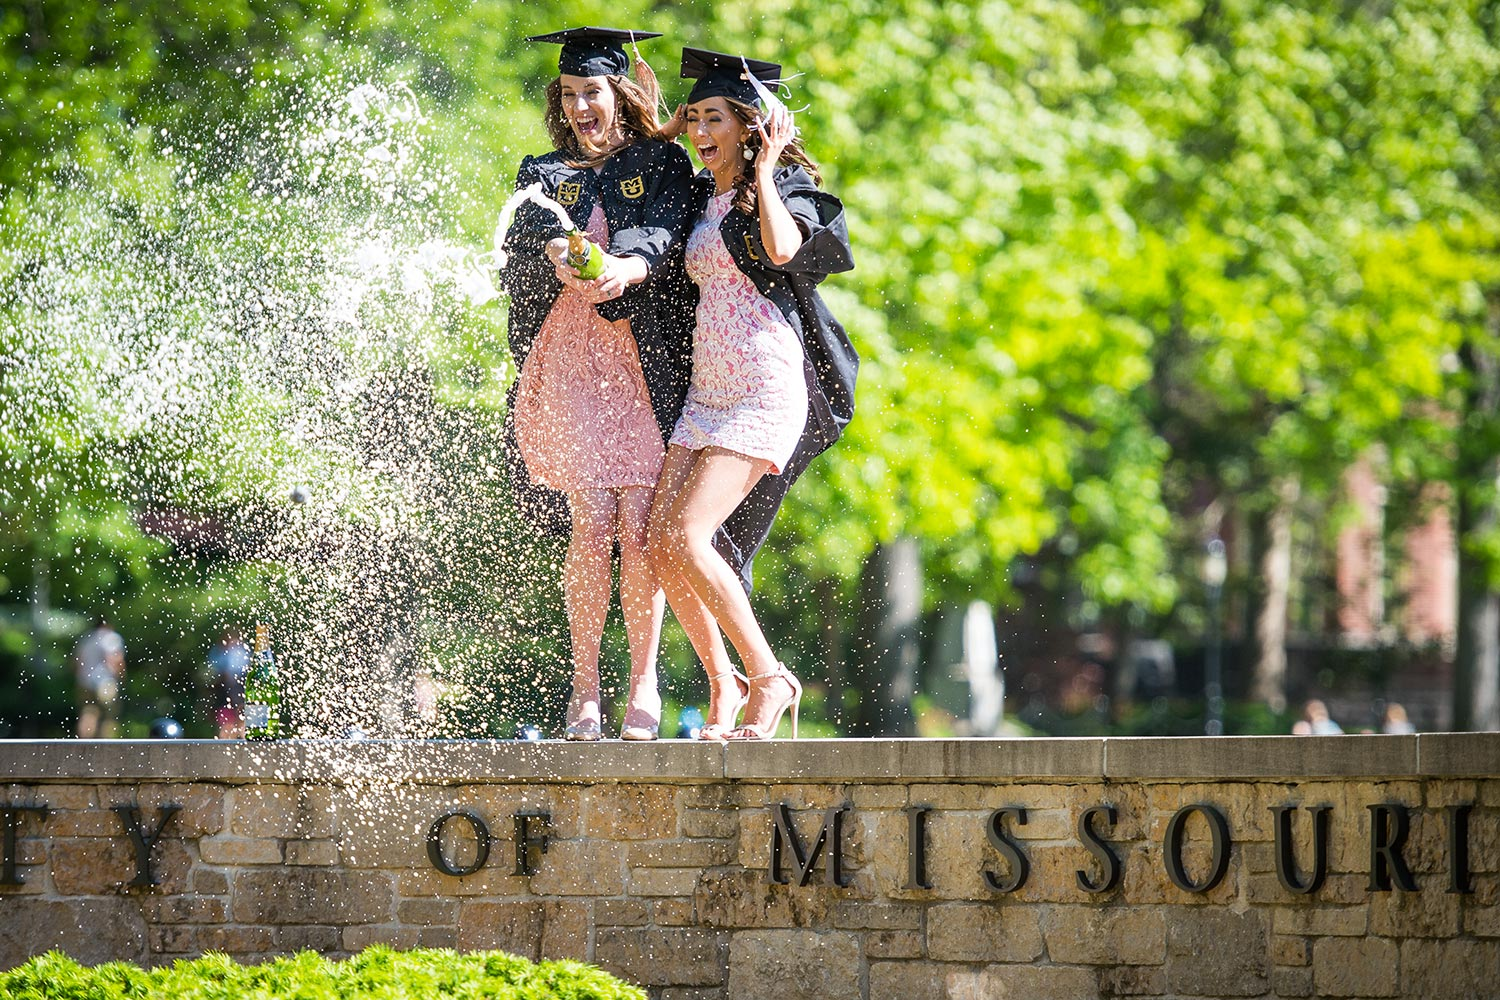 Marketing major Vanessa Salomon and mass media communication major Holly Sias celebrate their pending graduation with a bottle of sparkling bubbly.